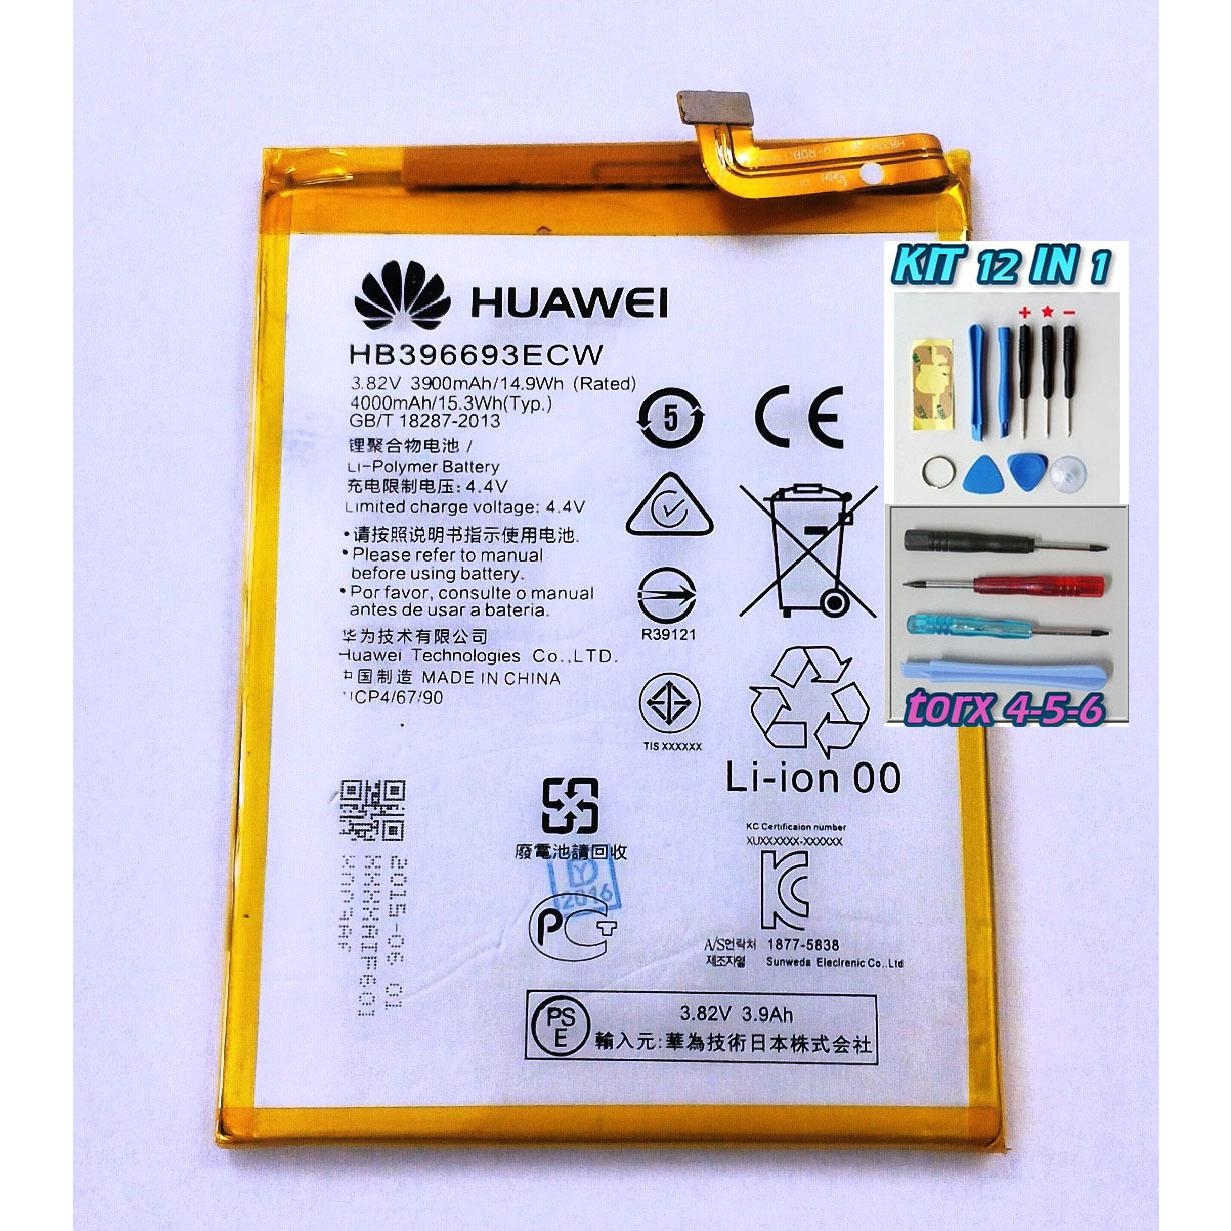 Batteria PER HUAWEI ASCEND MATE 8 HB396693ECW DA 3900 mAh ORIGINALE +KIT 12 IN 1